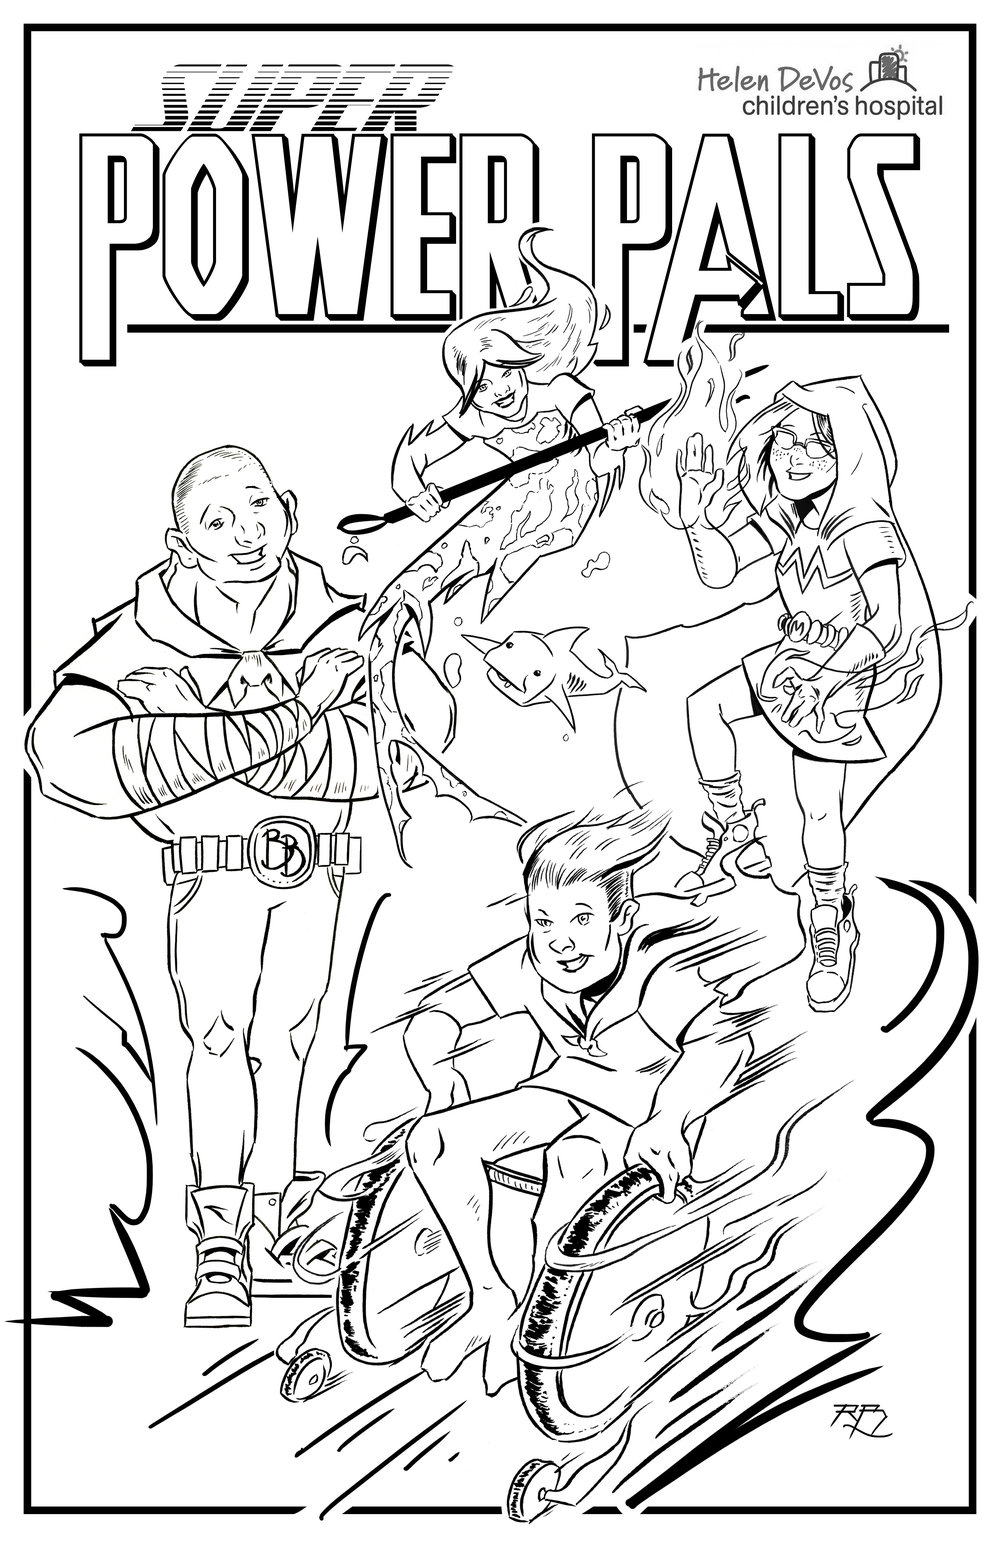 Childrens hospital coloring book - Cover For The Super Power Pals Comic Coloring Book For The Kids At Helen Devos Children S